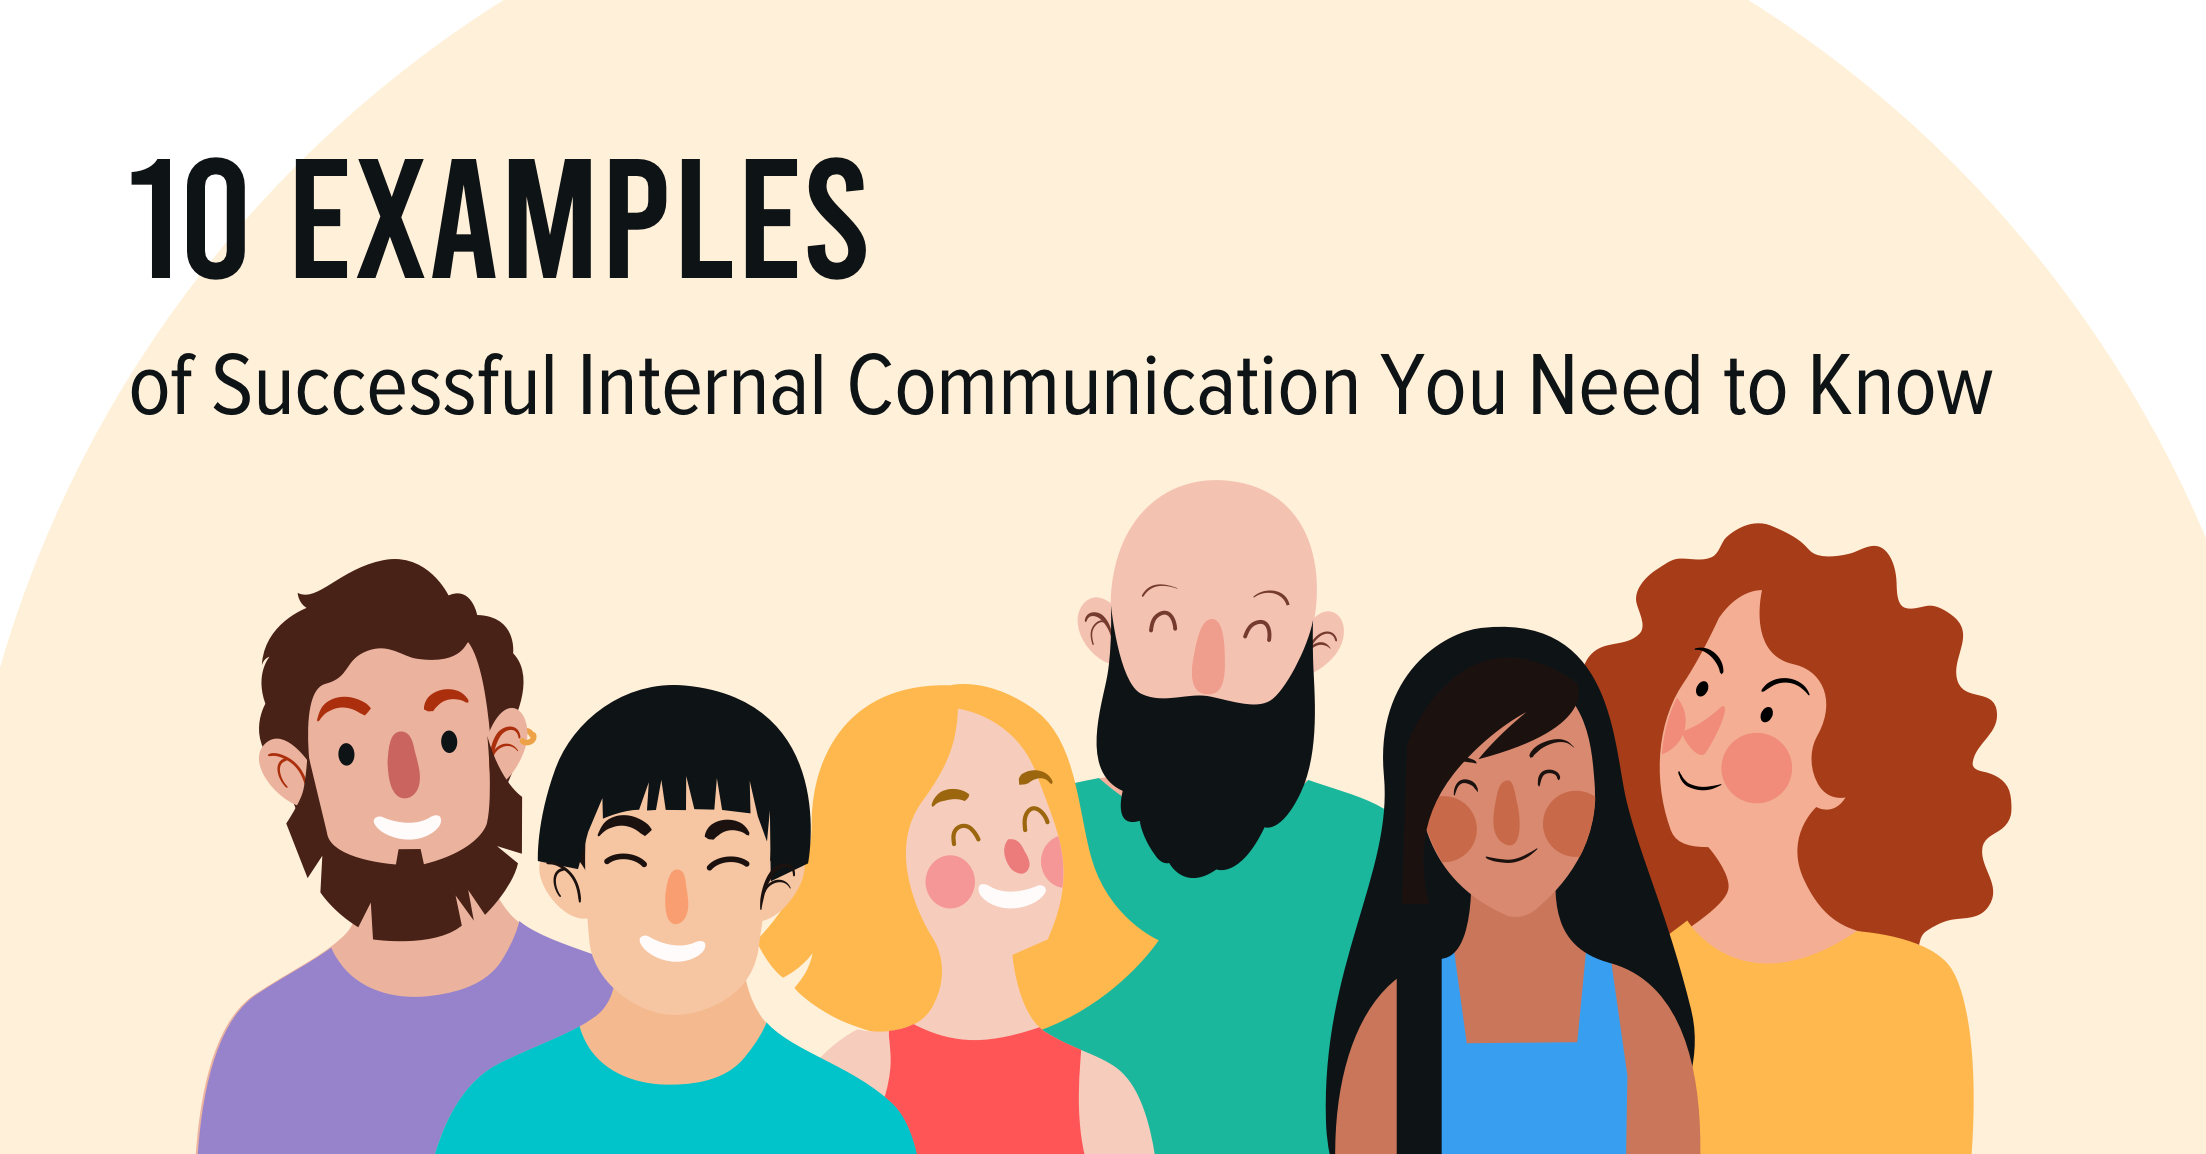 10 Examples of Successful Internal Communication You Need to Know